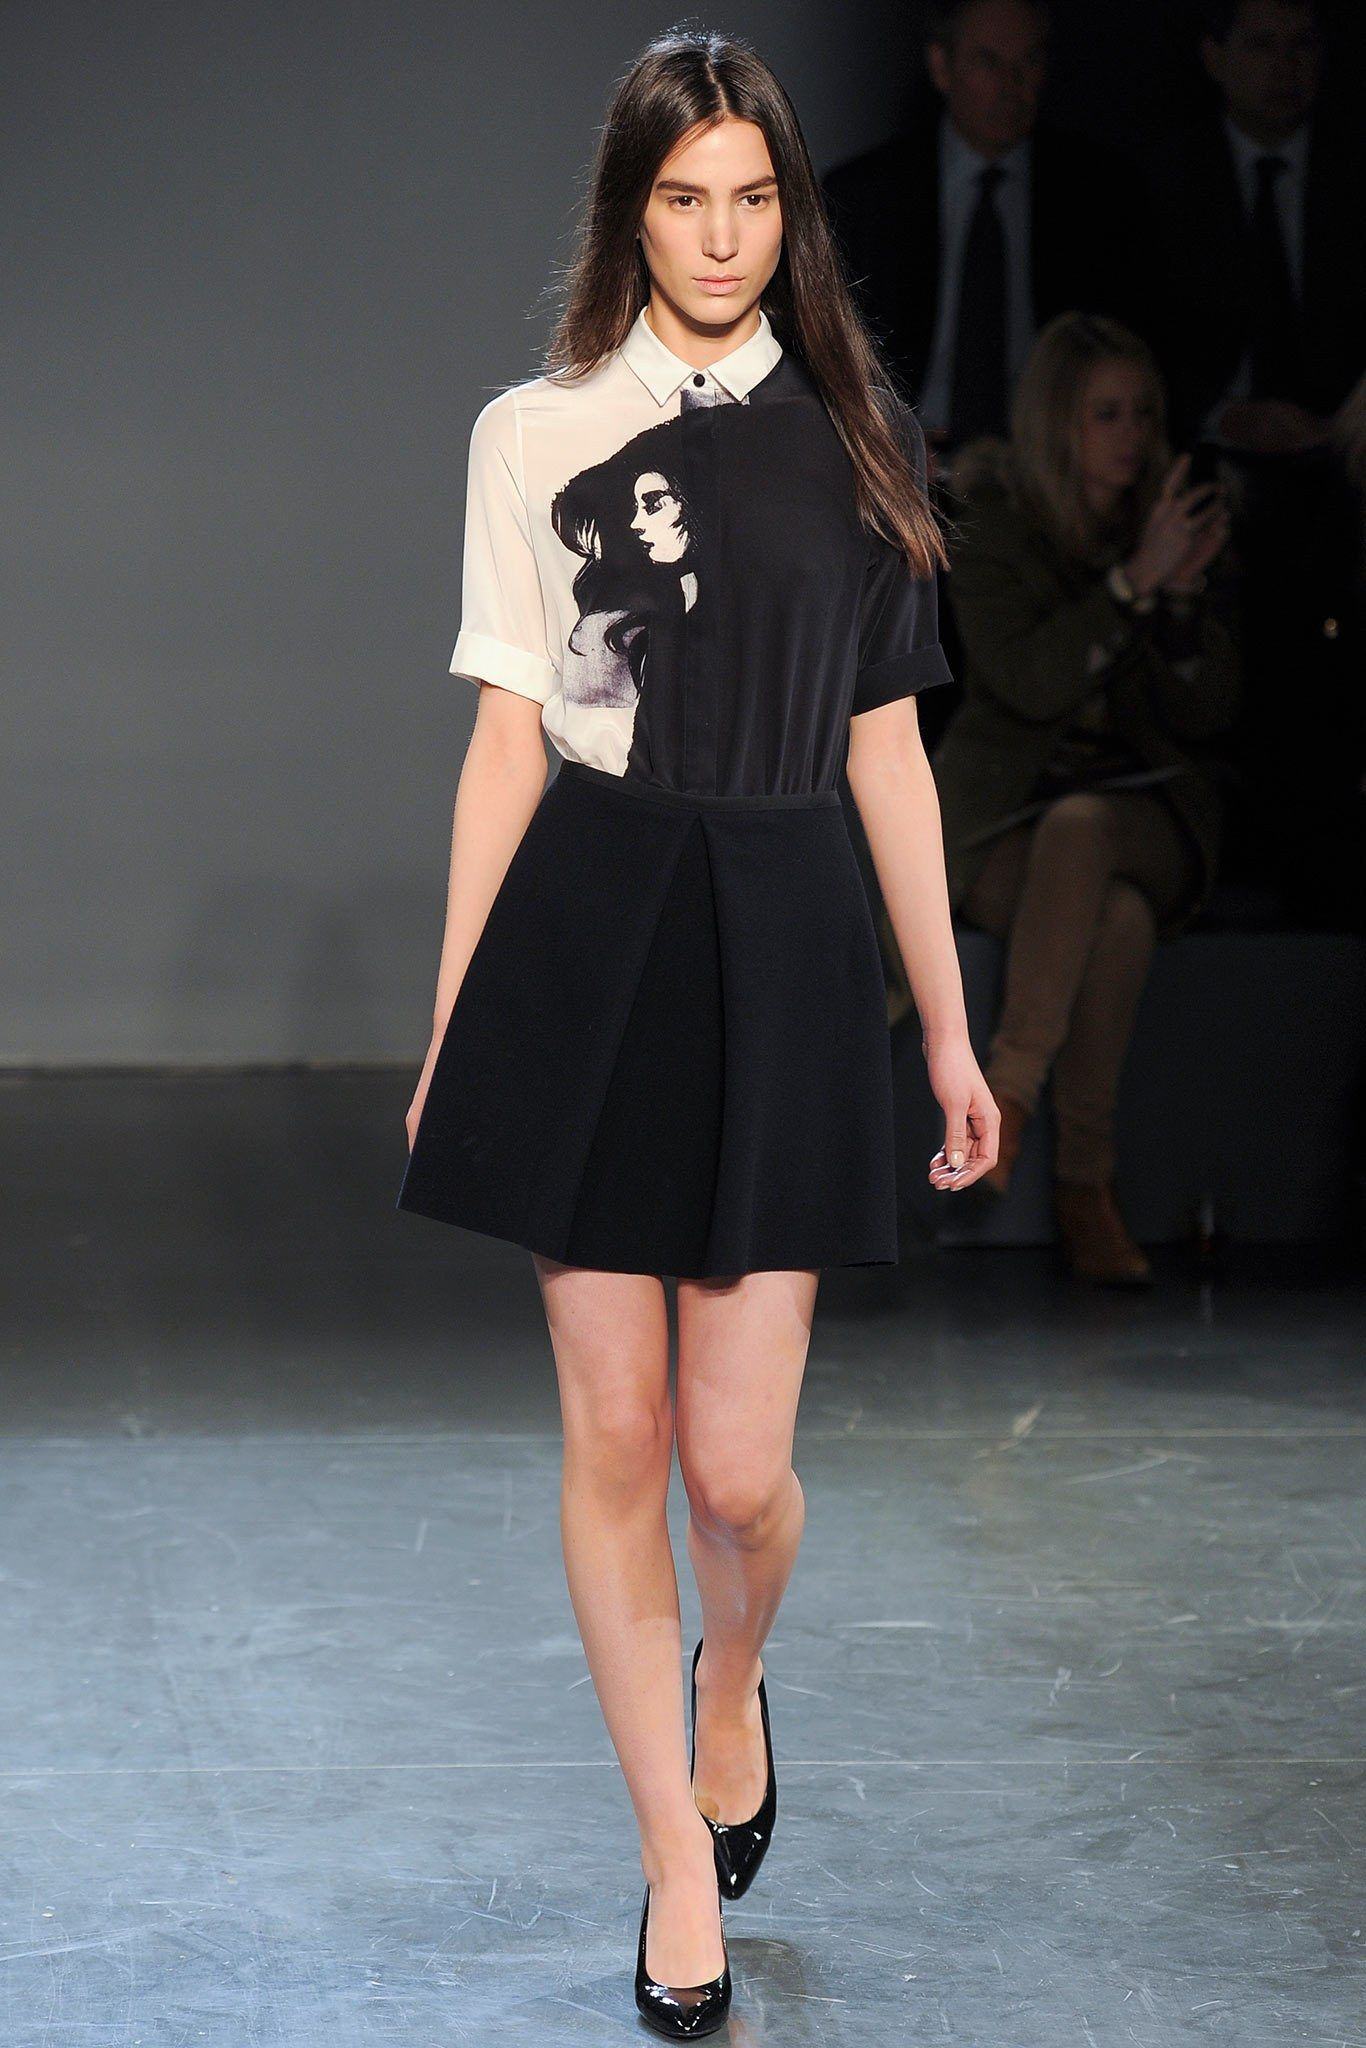 Forum on this topic: Victoria by Victoria Beckham FallWinter 2013-2014 RTW , victoria-by-victoria-beckham-fallwinter-2013-2014-rtw/